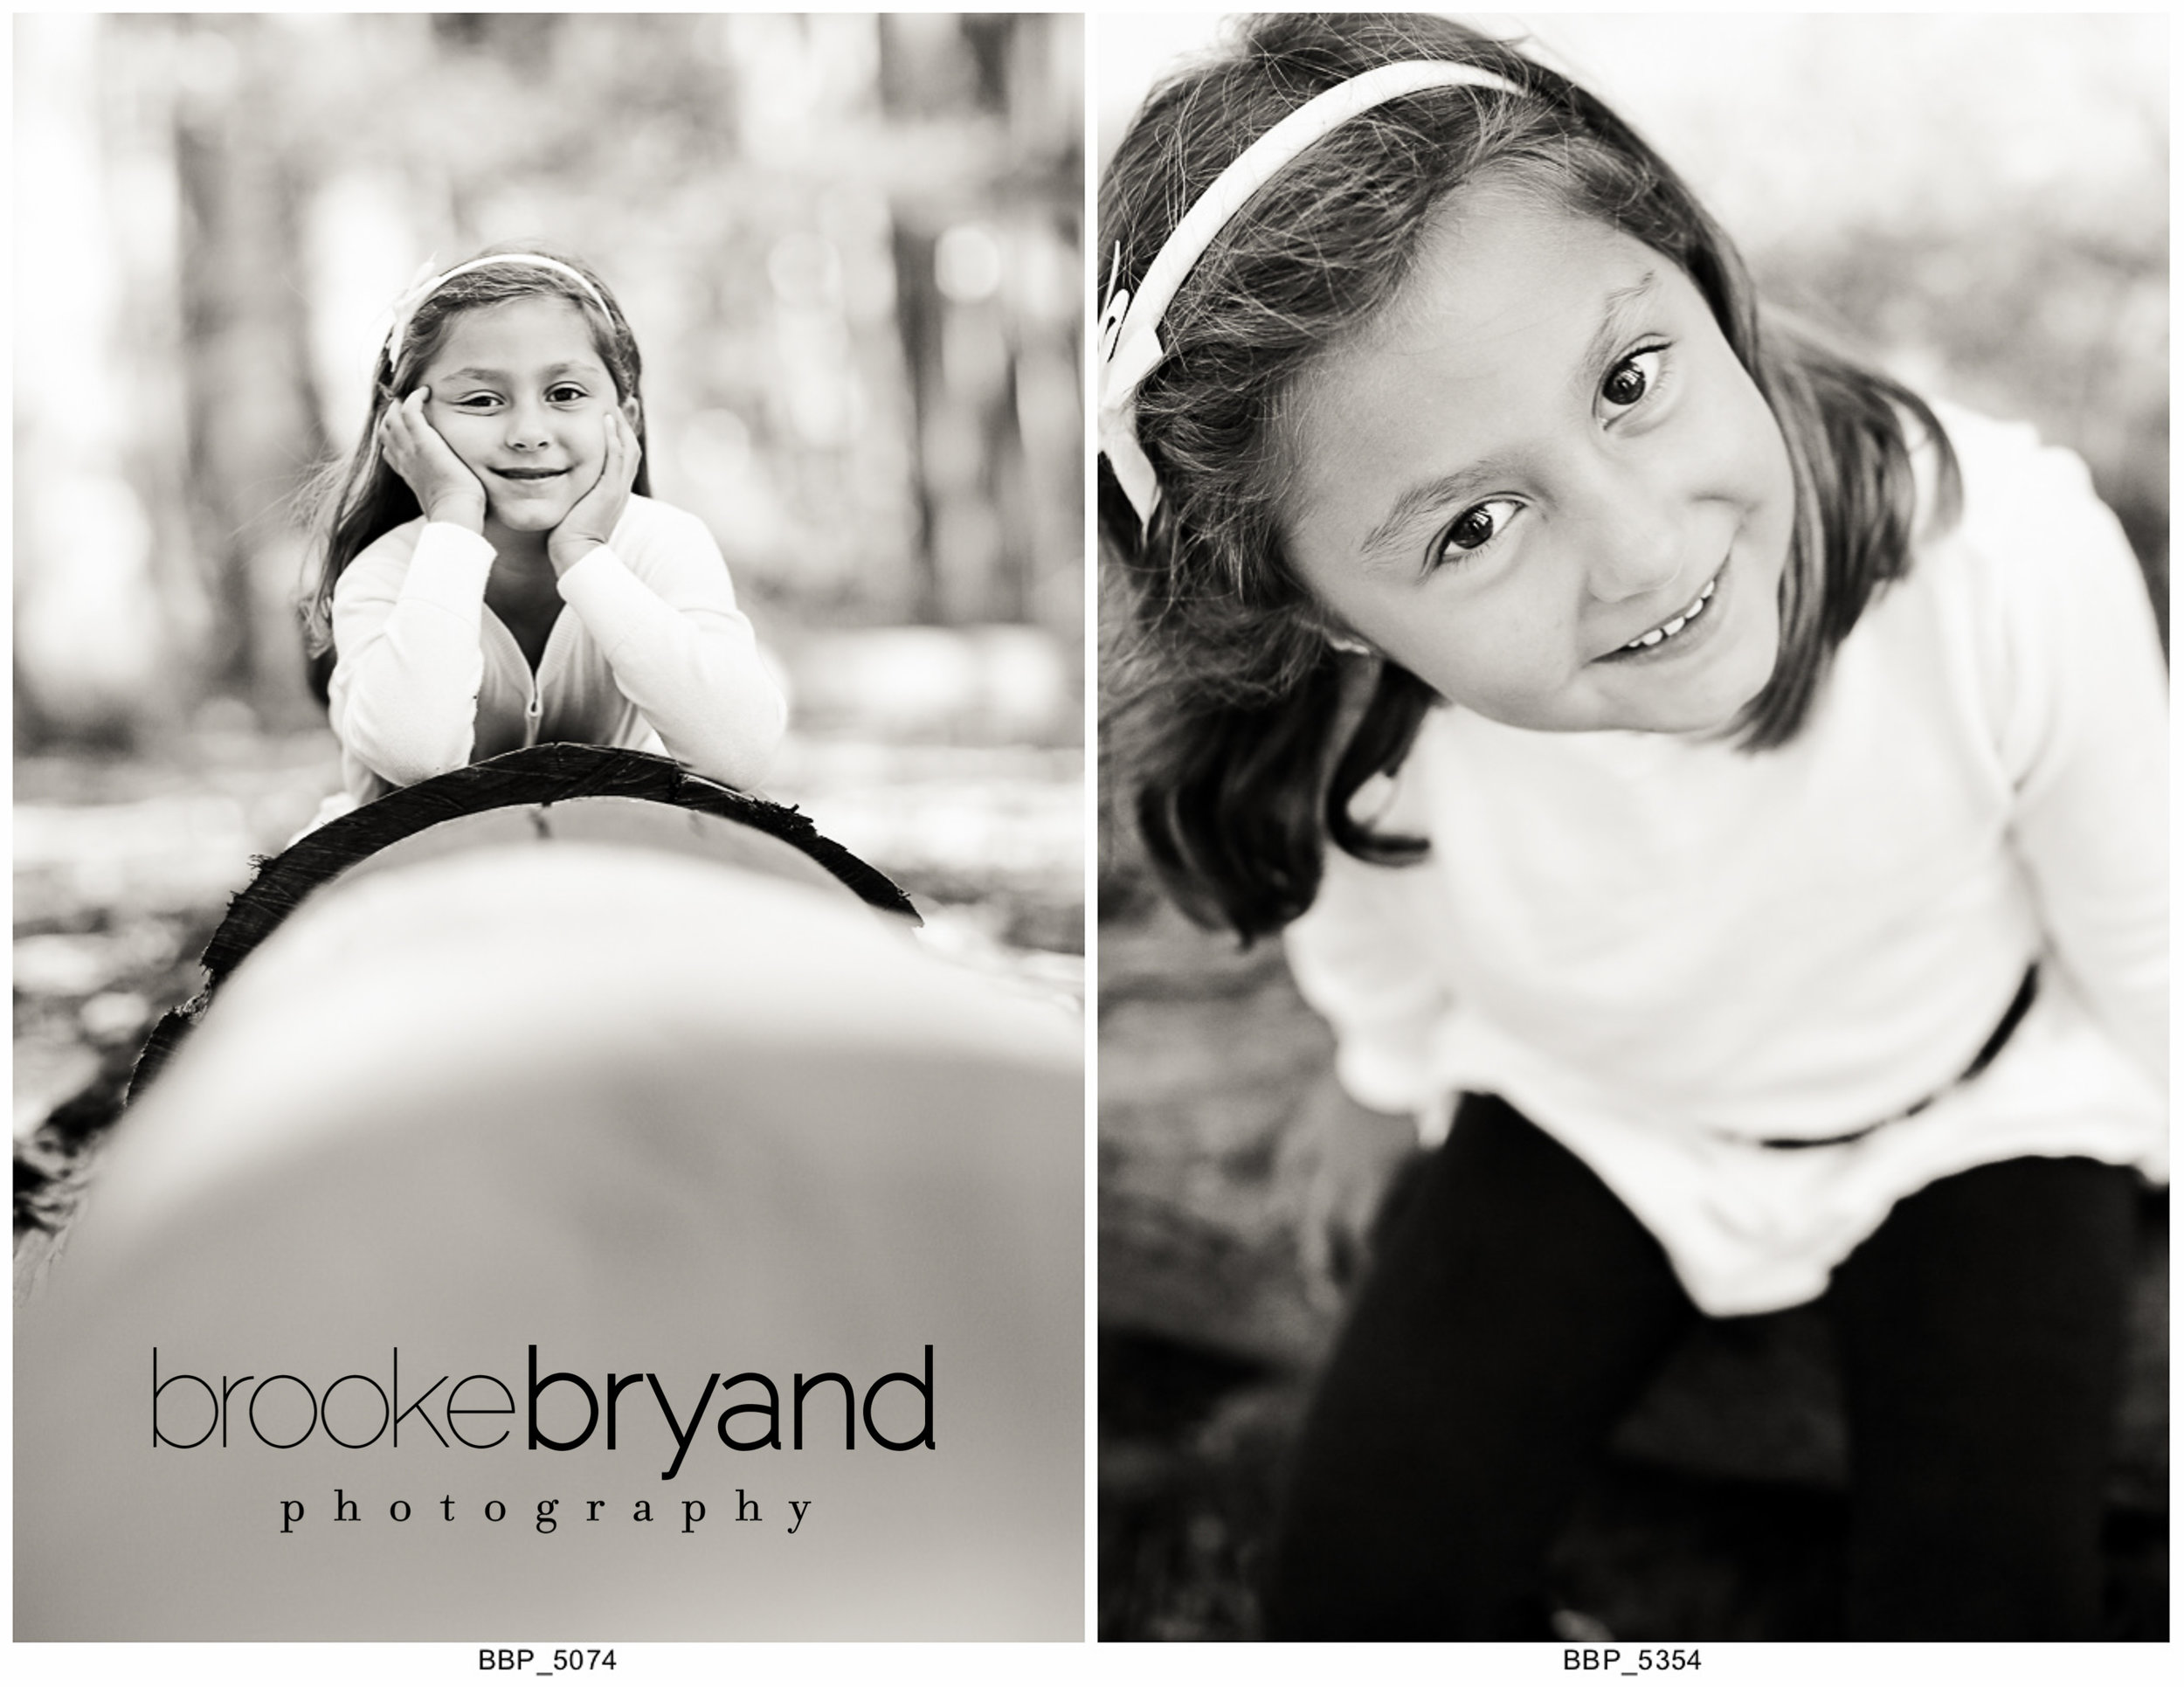 09.2013-Brooke-Bryand-Photography-Presidio-Lovers-Lane-Family-Photos-San-Francisco-Family-Photographer-2-up-muhl-patel-1.jpg